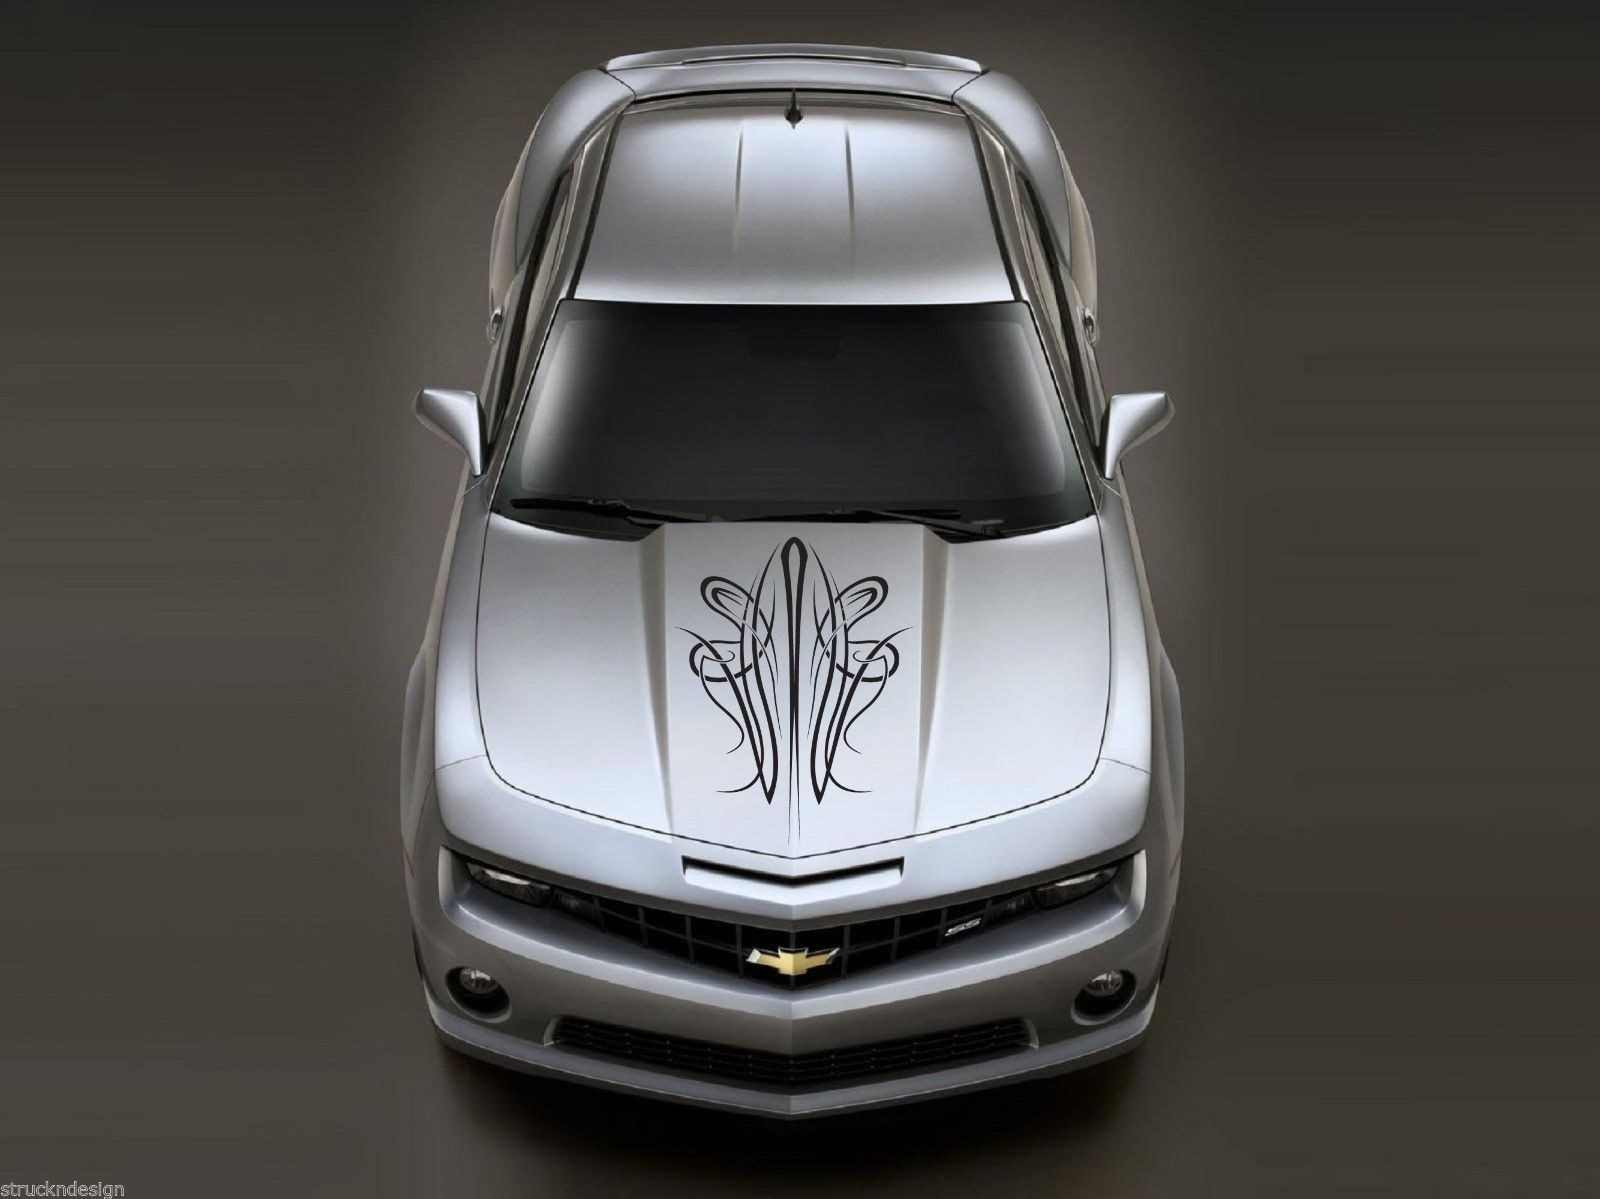 For Classic Pinstripe Vinyl Hood Reflective Decal Sticker Car Van Vehicle Truck SUV